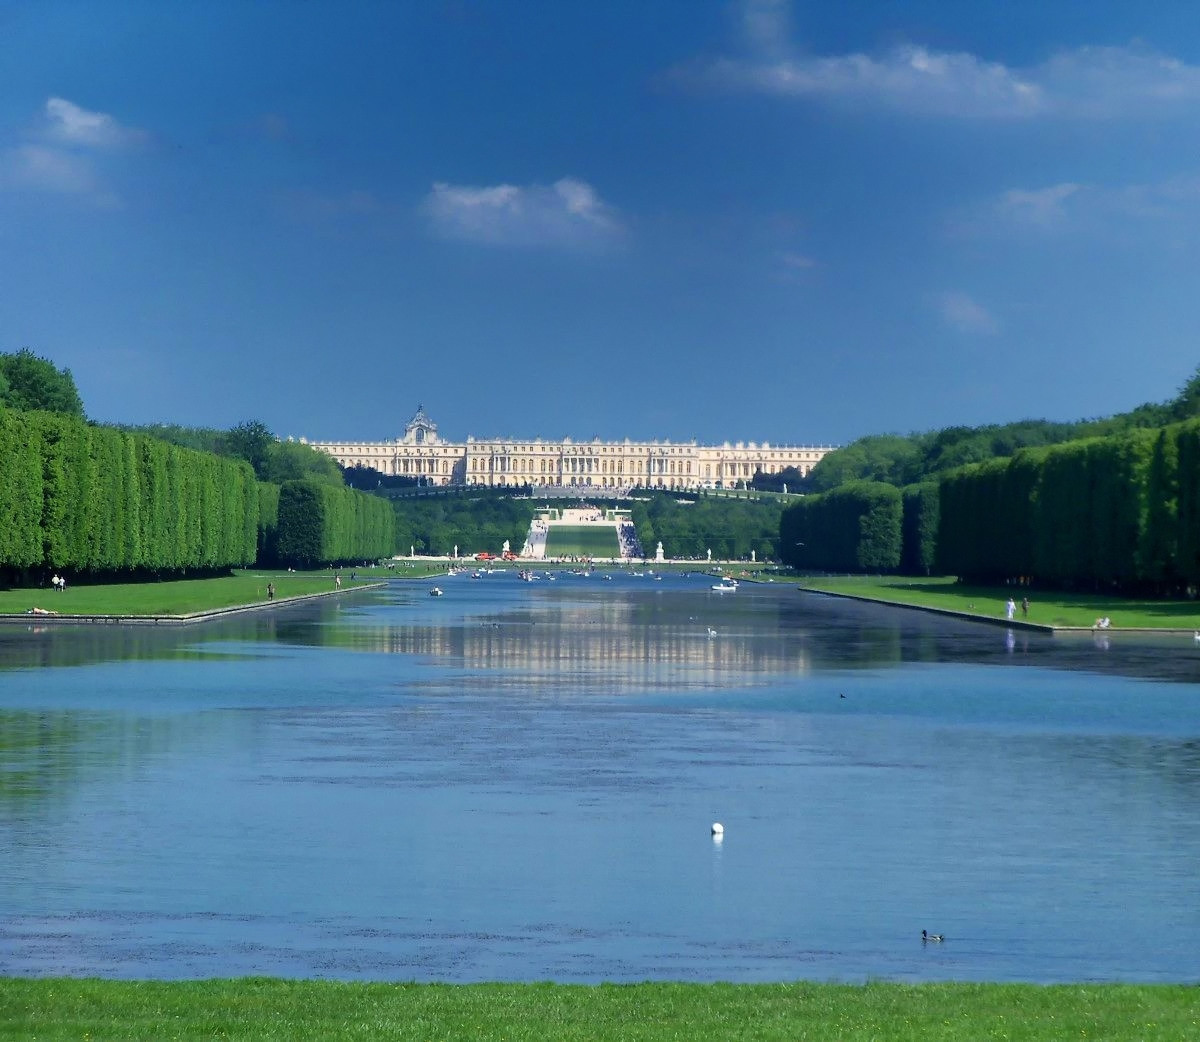 Palace of Versailles seen from the end of the Grand Canal